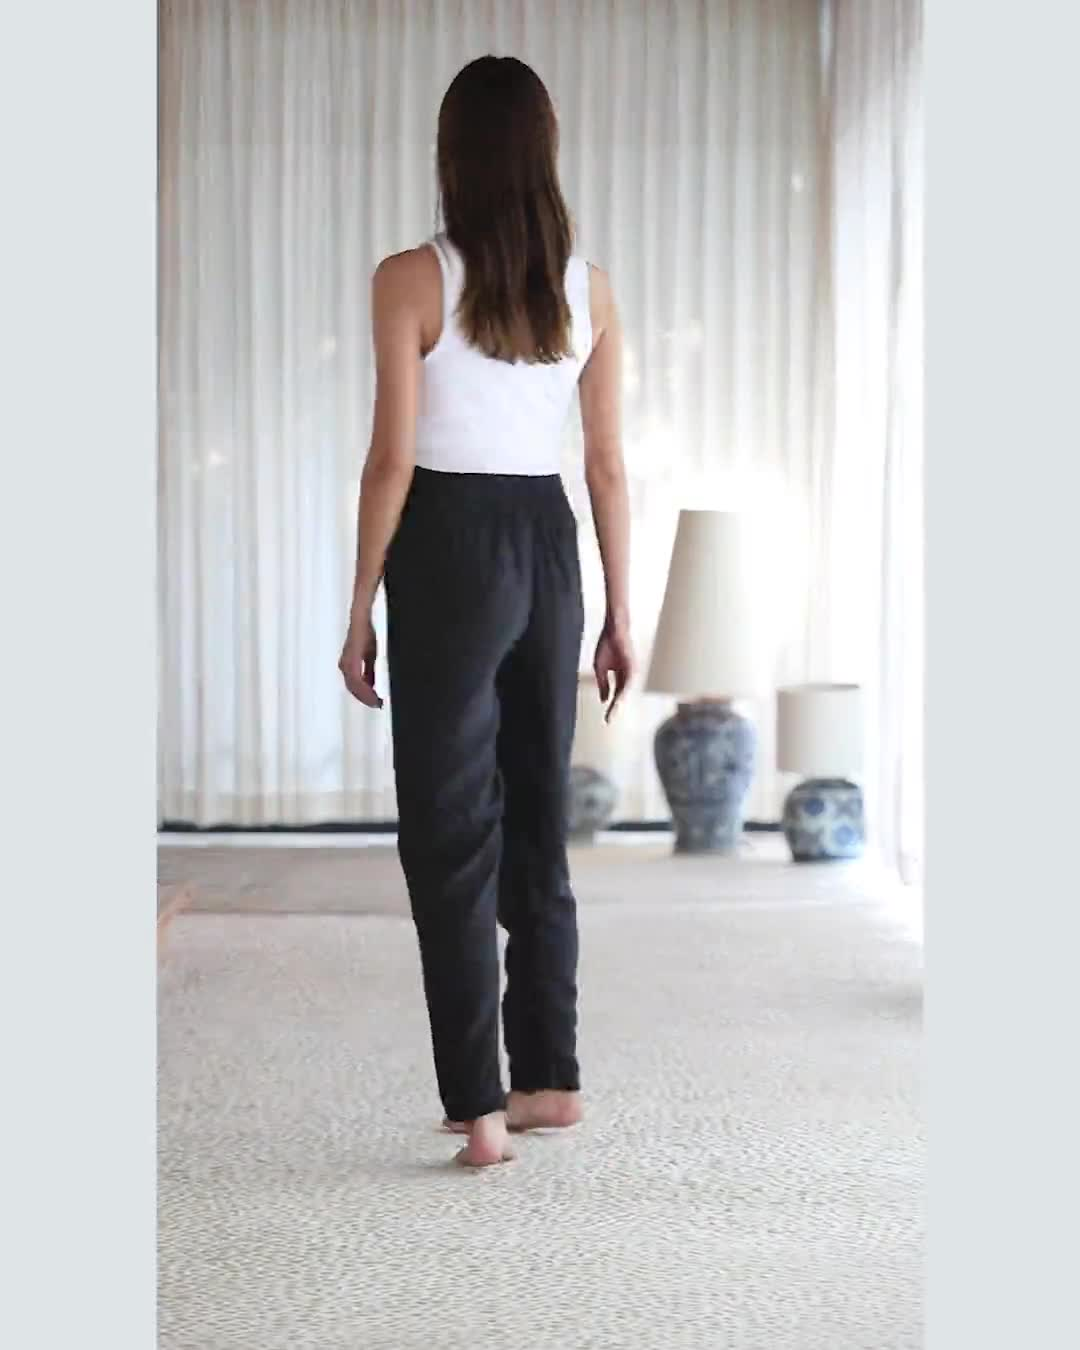 Aquerella Relaxed Fit With Pockets Pants - Video